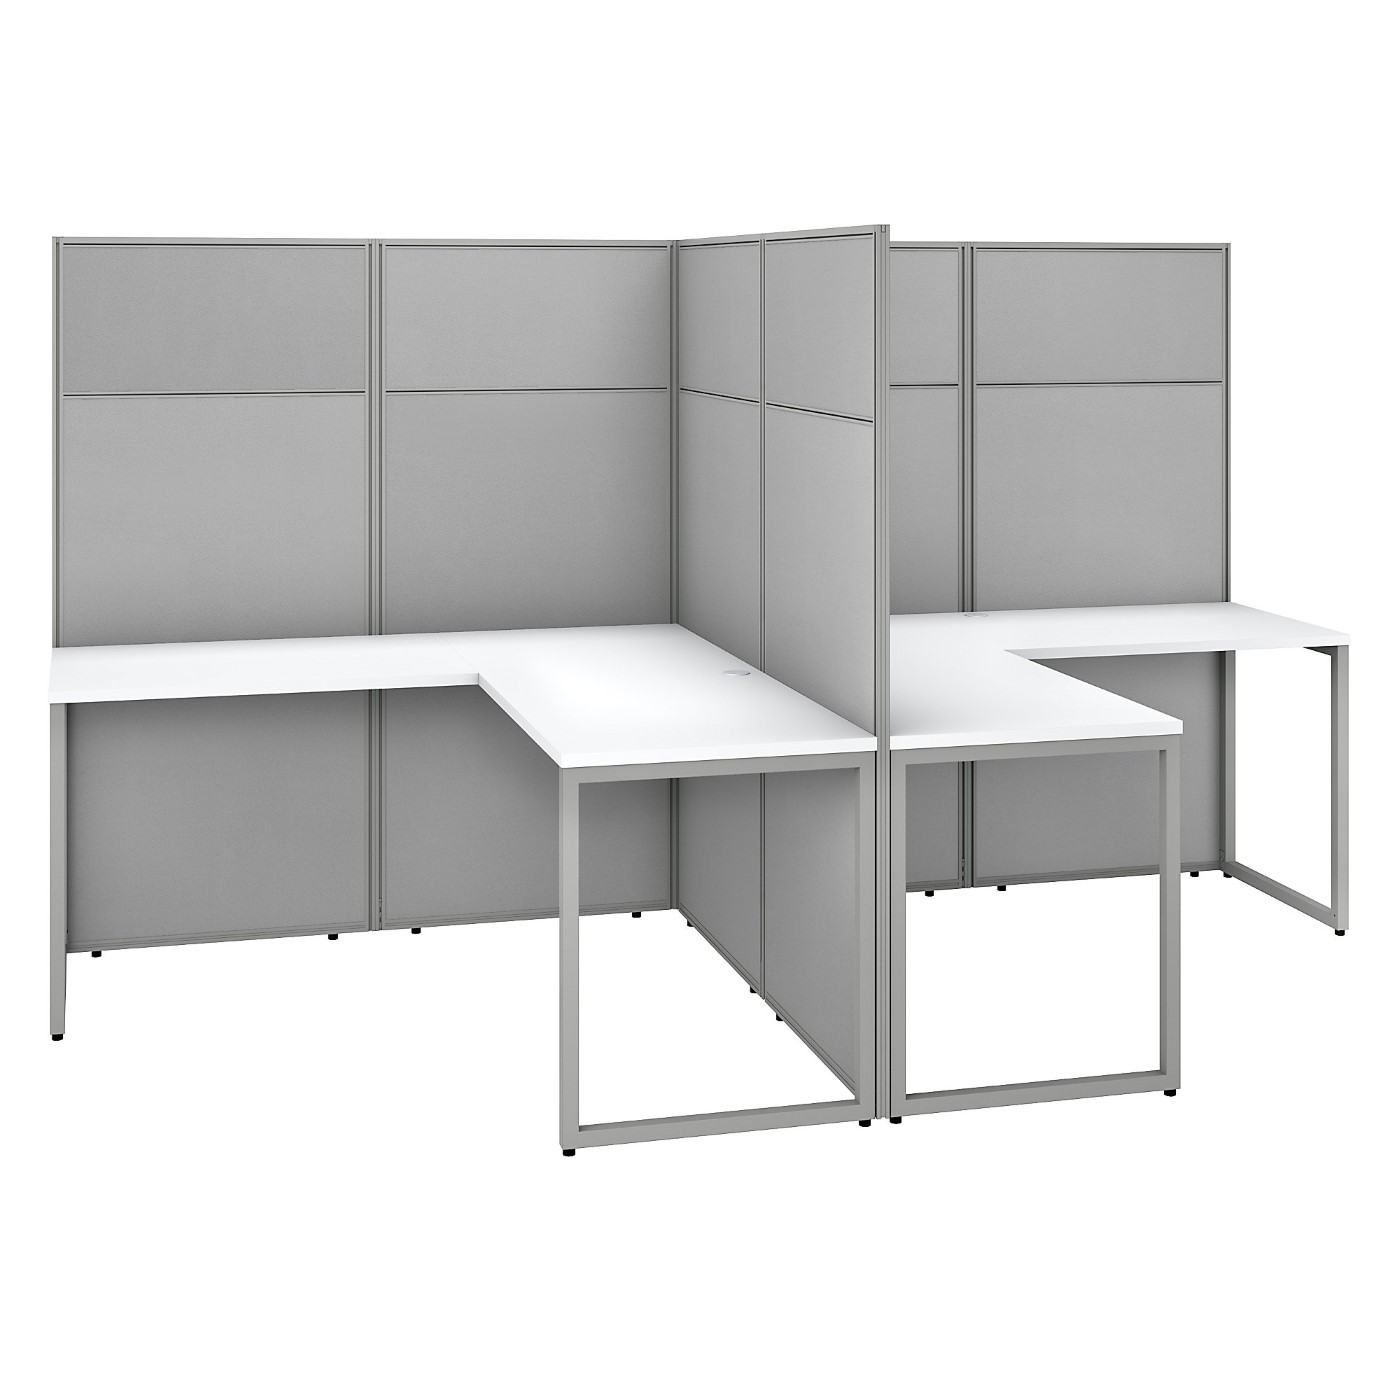 BUSH BUSINESS FURNITURE EASY OFFICE 60W 2 PERSON L SHAPED CUBICLE DESK WORKSTATION WITH 66H PANELS. FREE SHIPPING SALE DEDUCT 10% MORE ENTER '10percent' IN COUPON CODE BOX WHILE CHECKING OUT. ENDS 5-31-20.